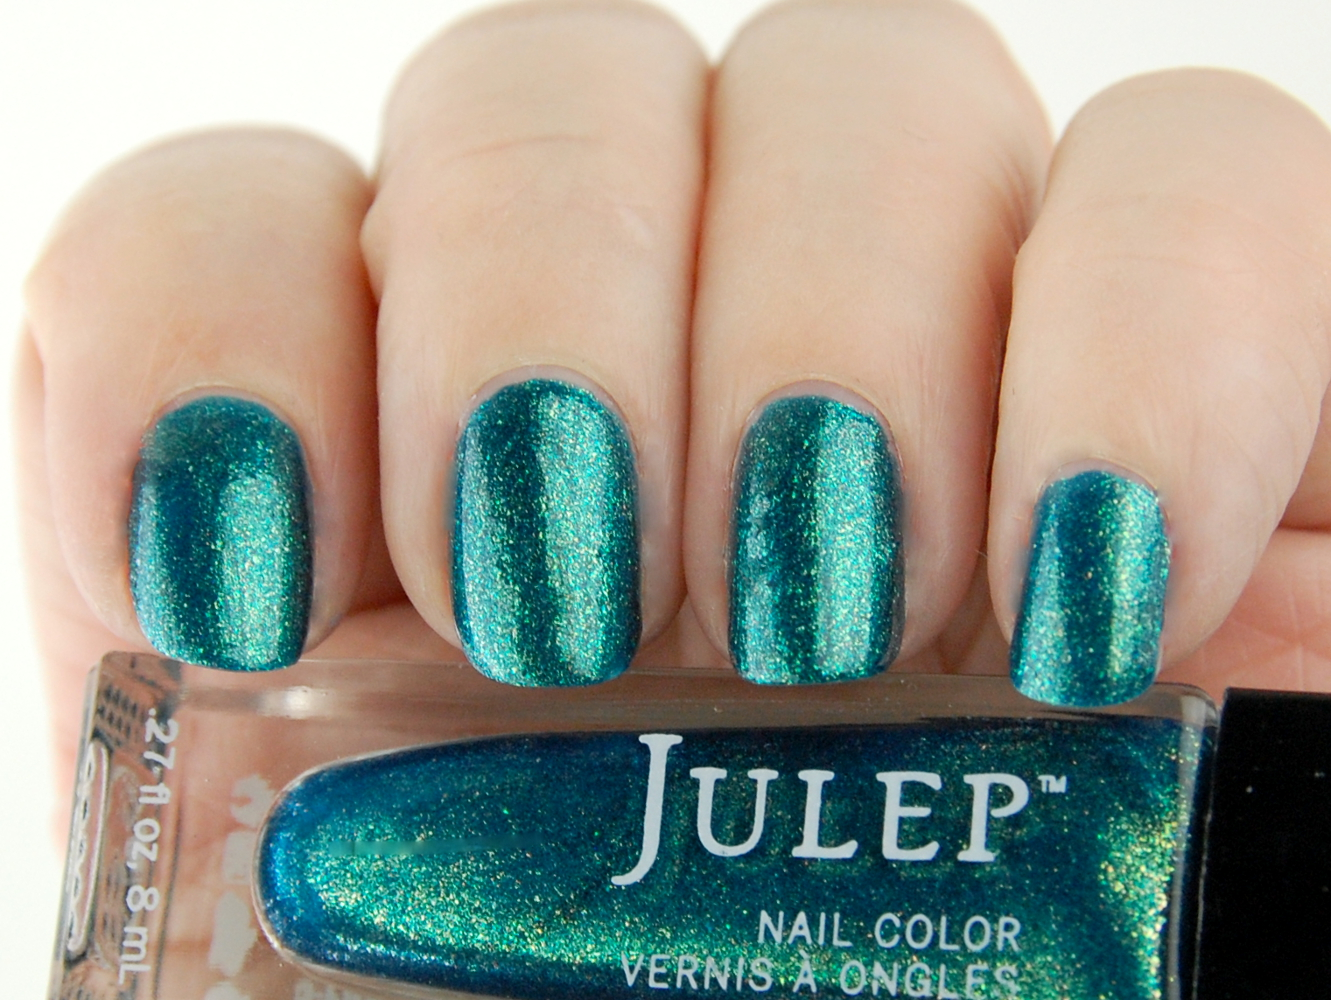 Julep Maven August 2014: Boho Glam – Swatch and Review